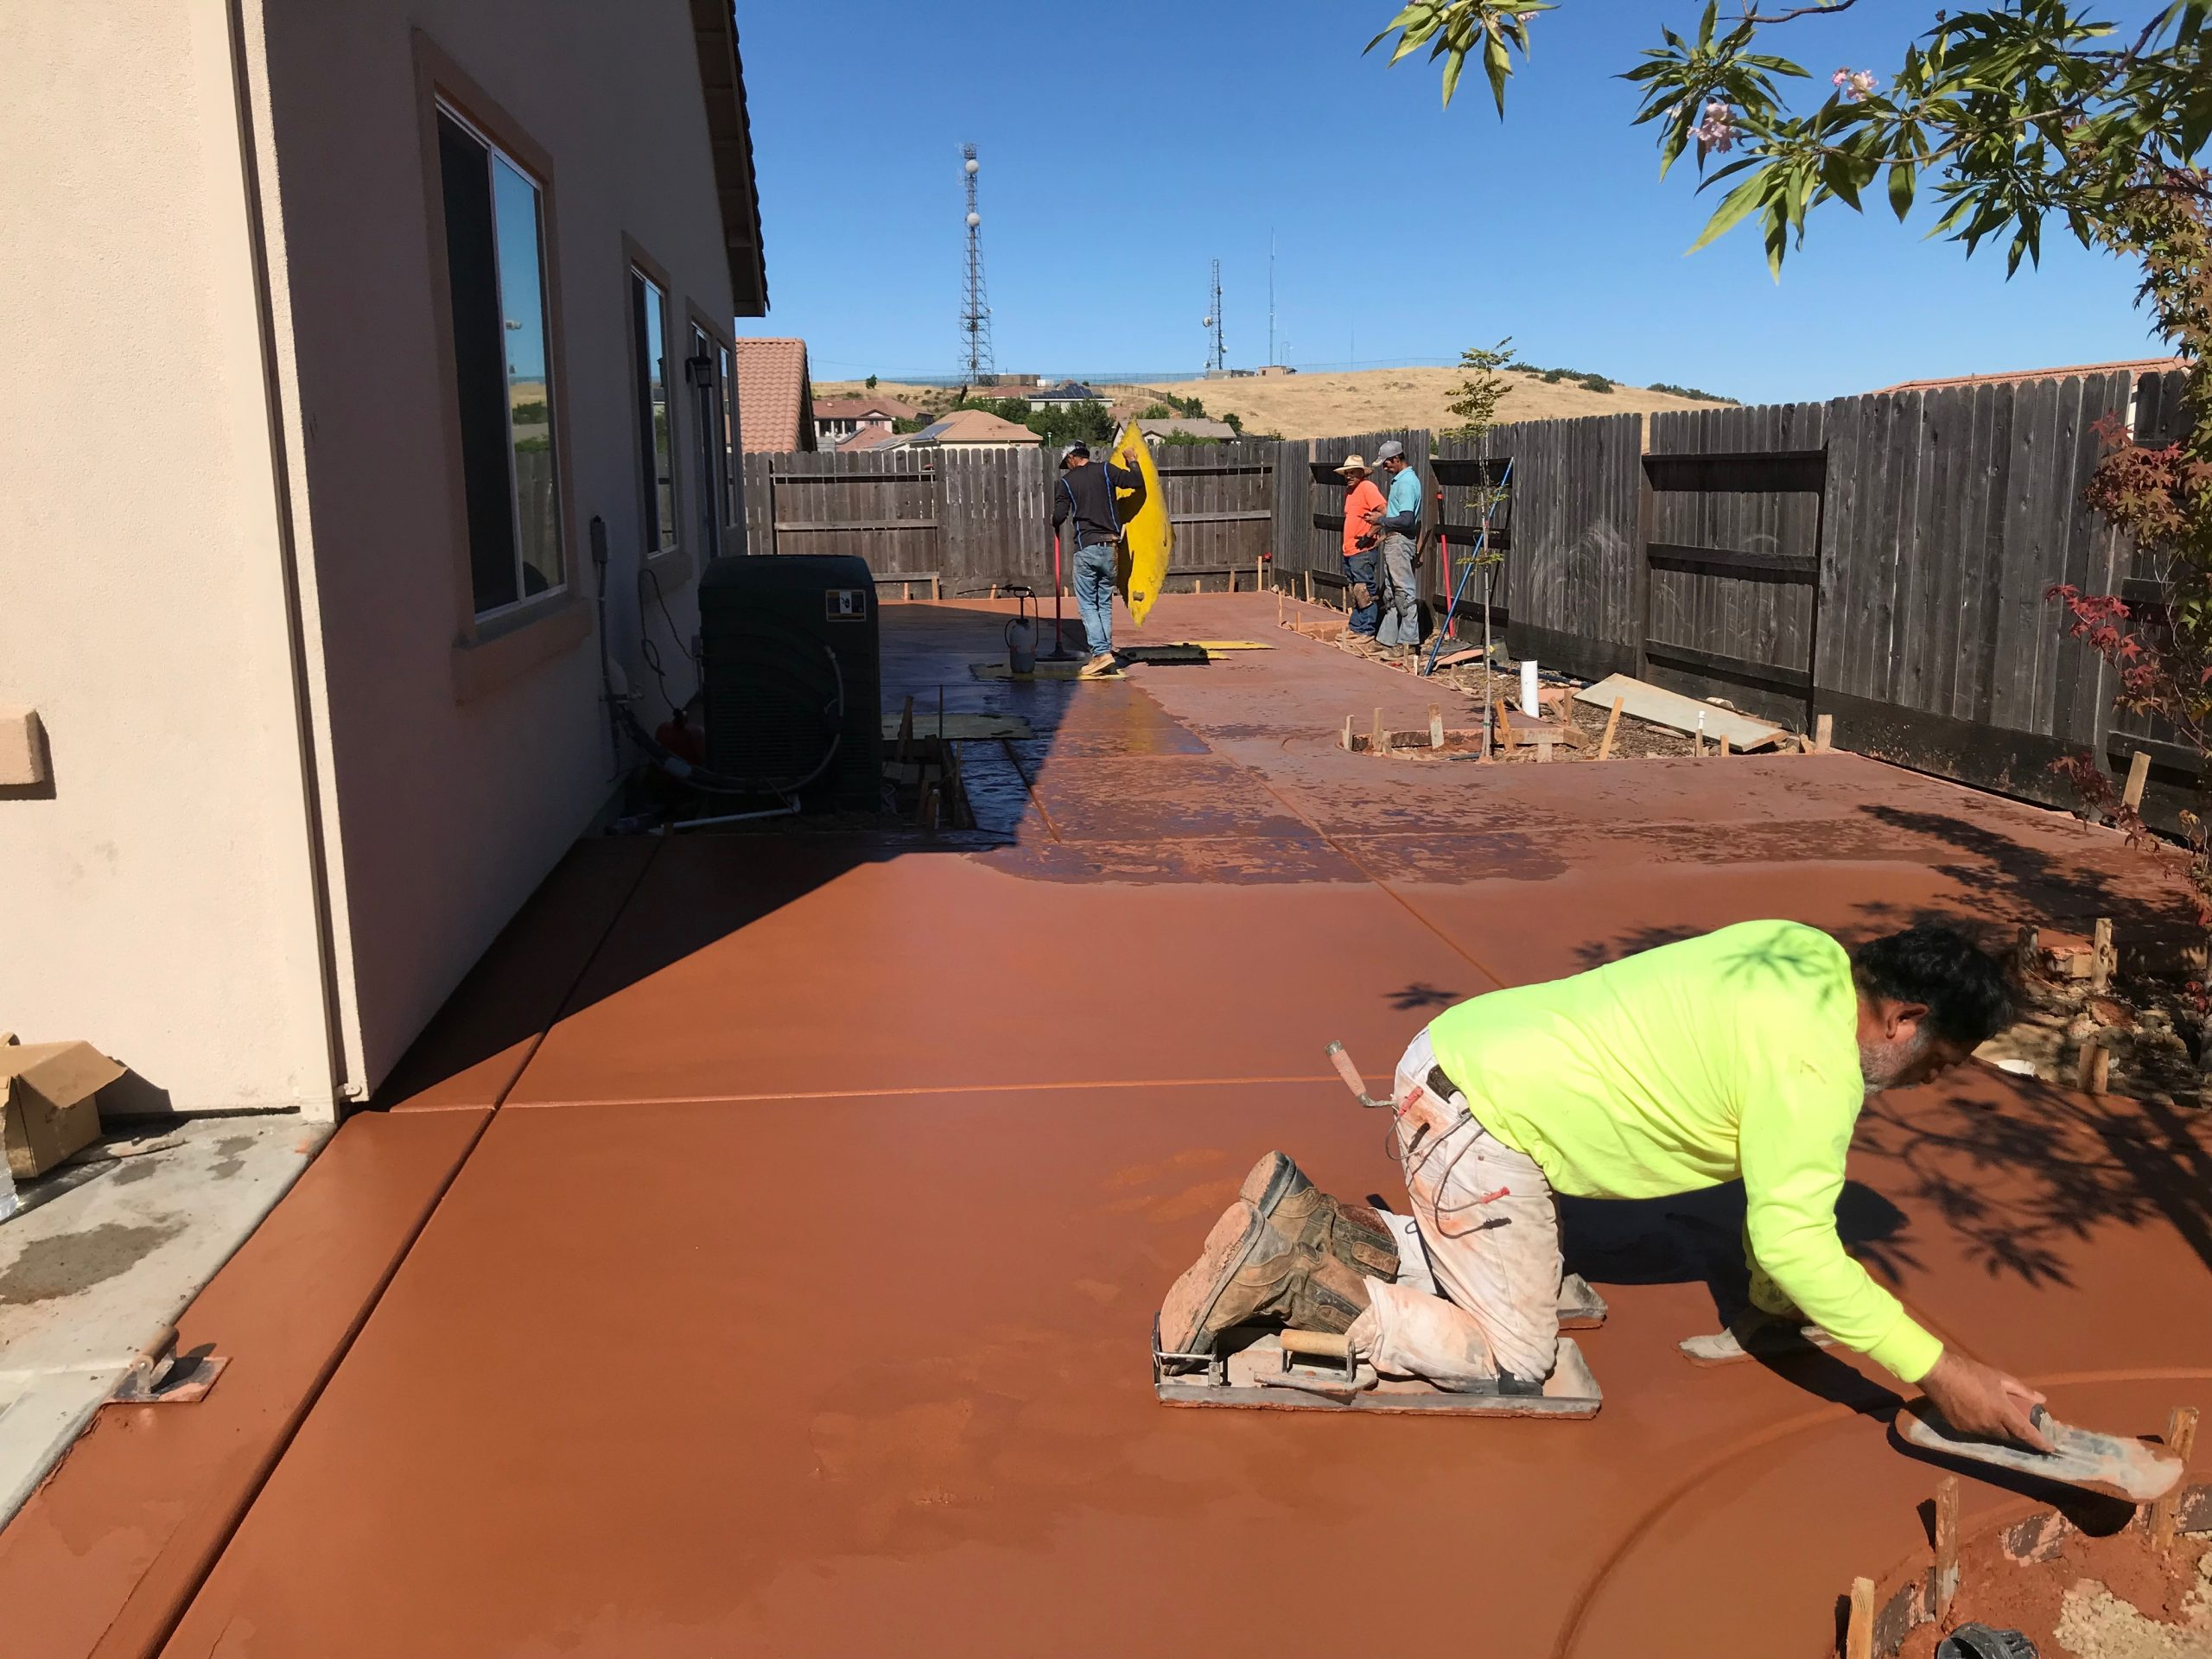 An image of stained concrete in Union City.